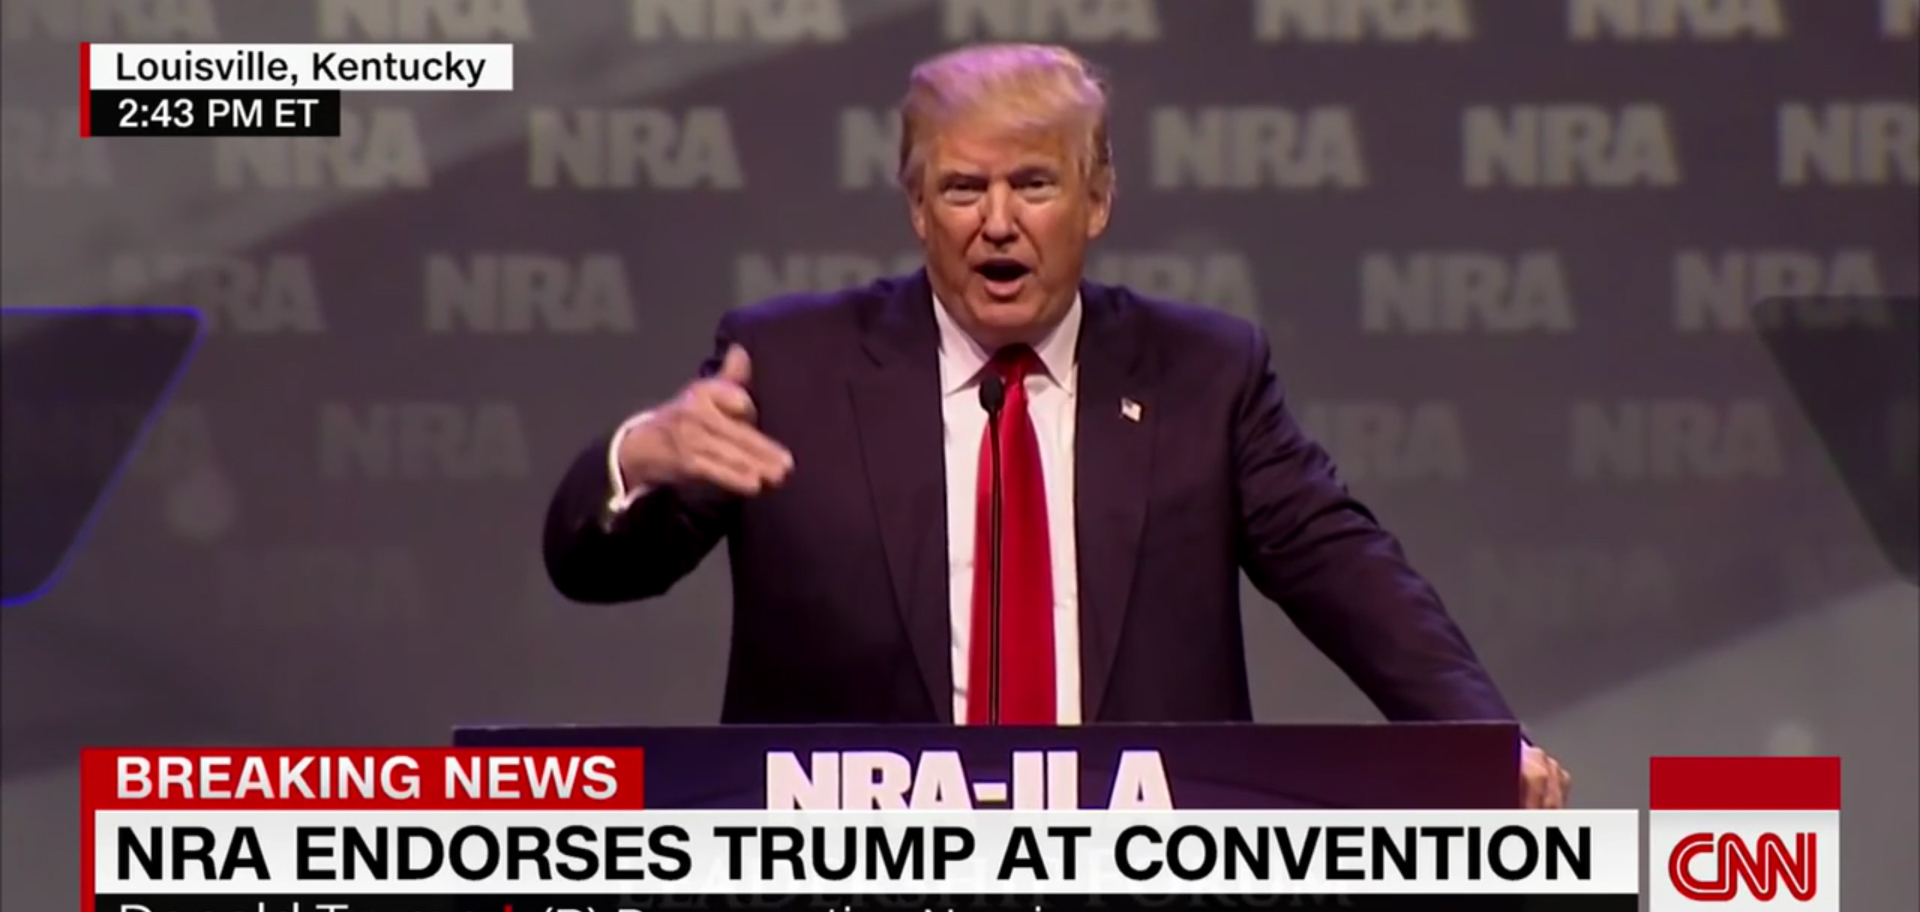 The NRA's embrace of Tyrant Trump